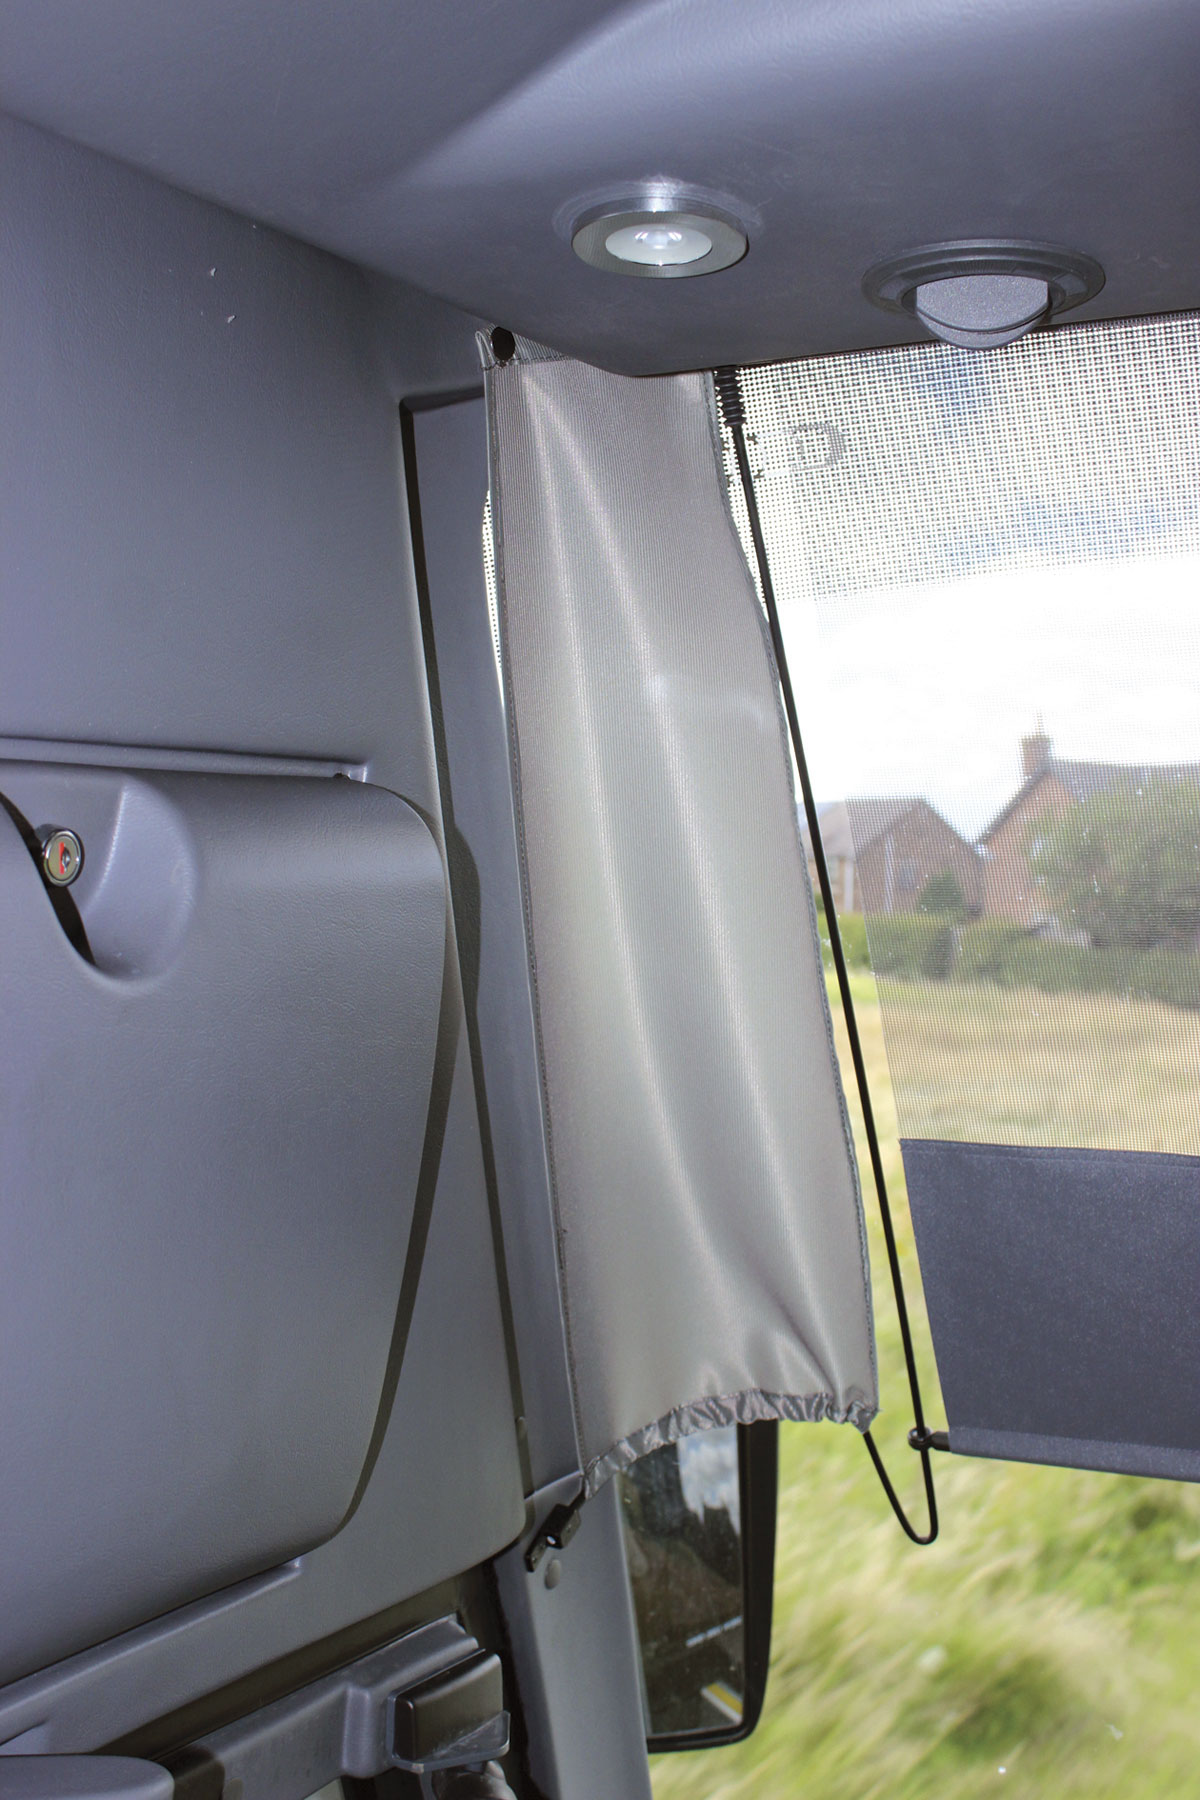 A nice idea I've not seen previously are gaiters either side of the sunblind to prevent the sun getting past the edges